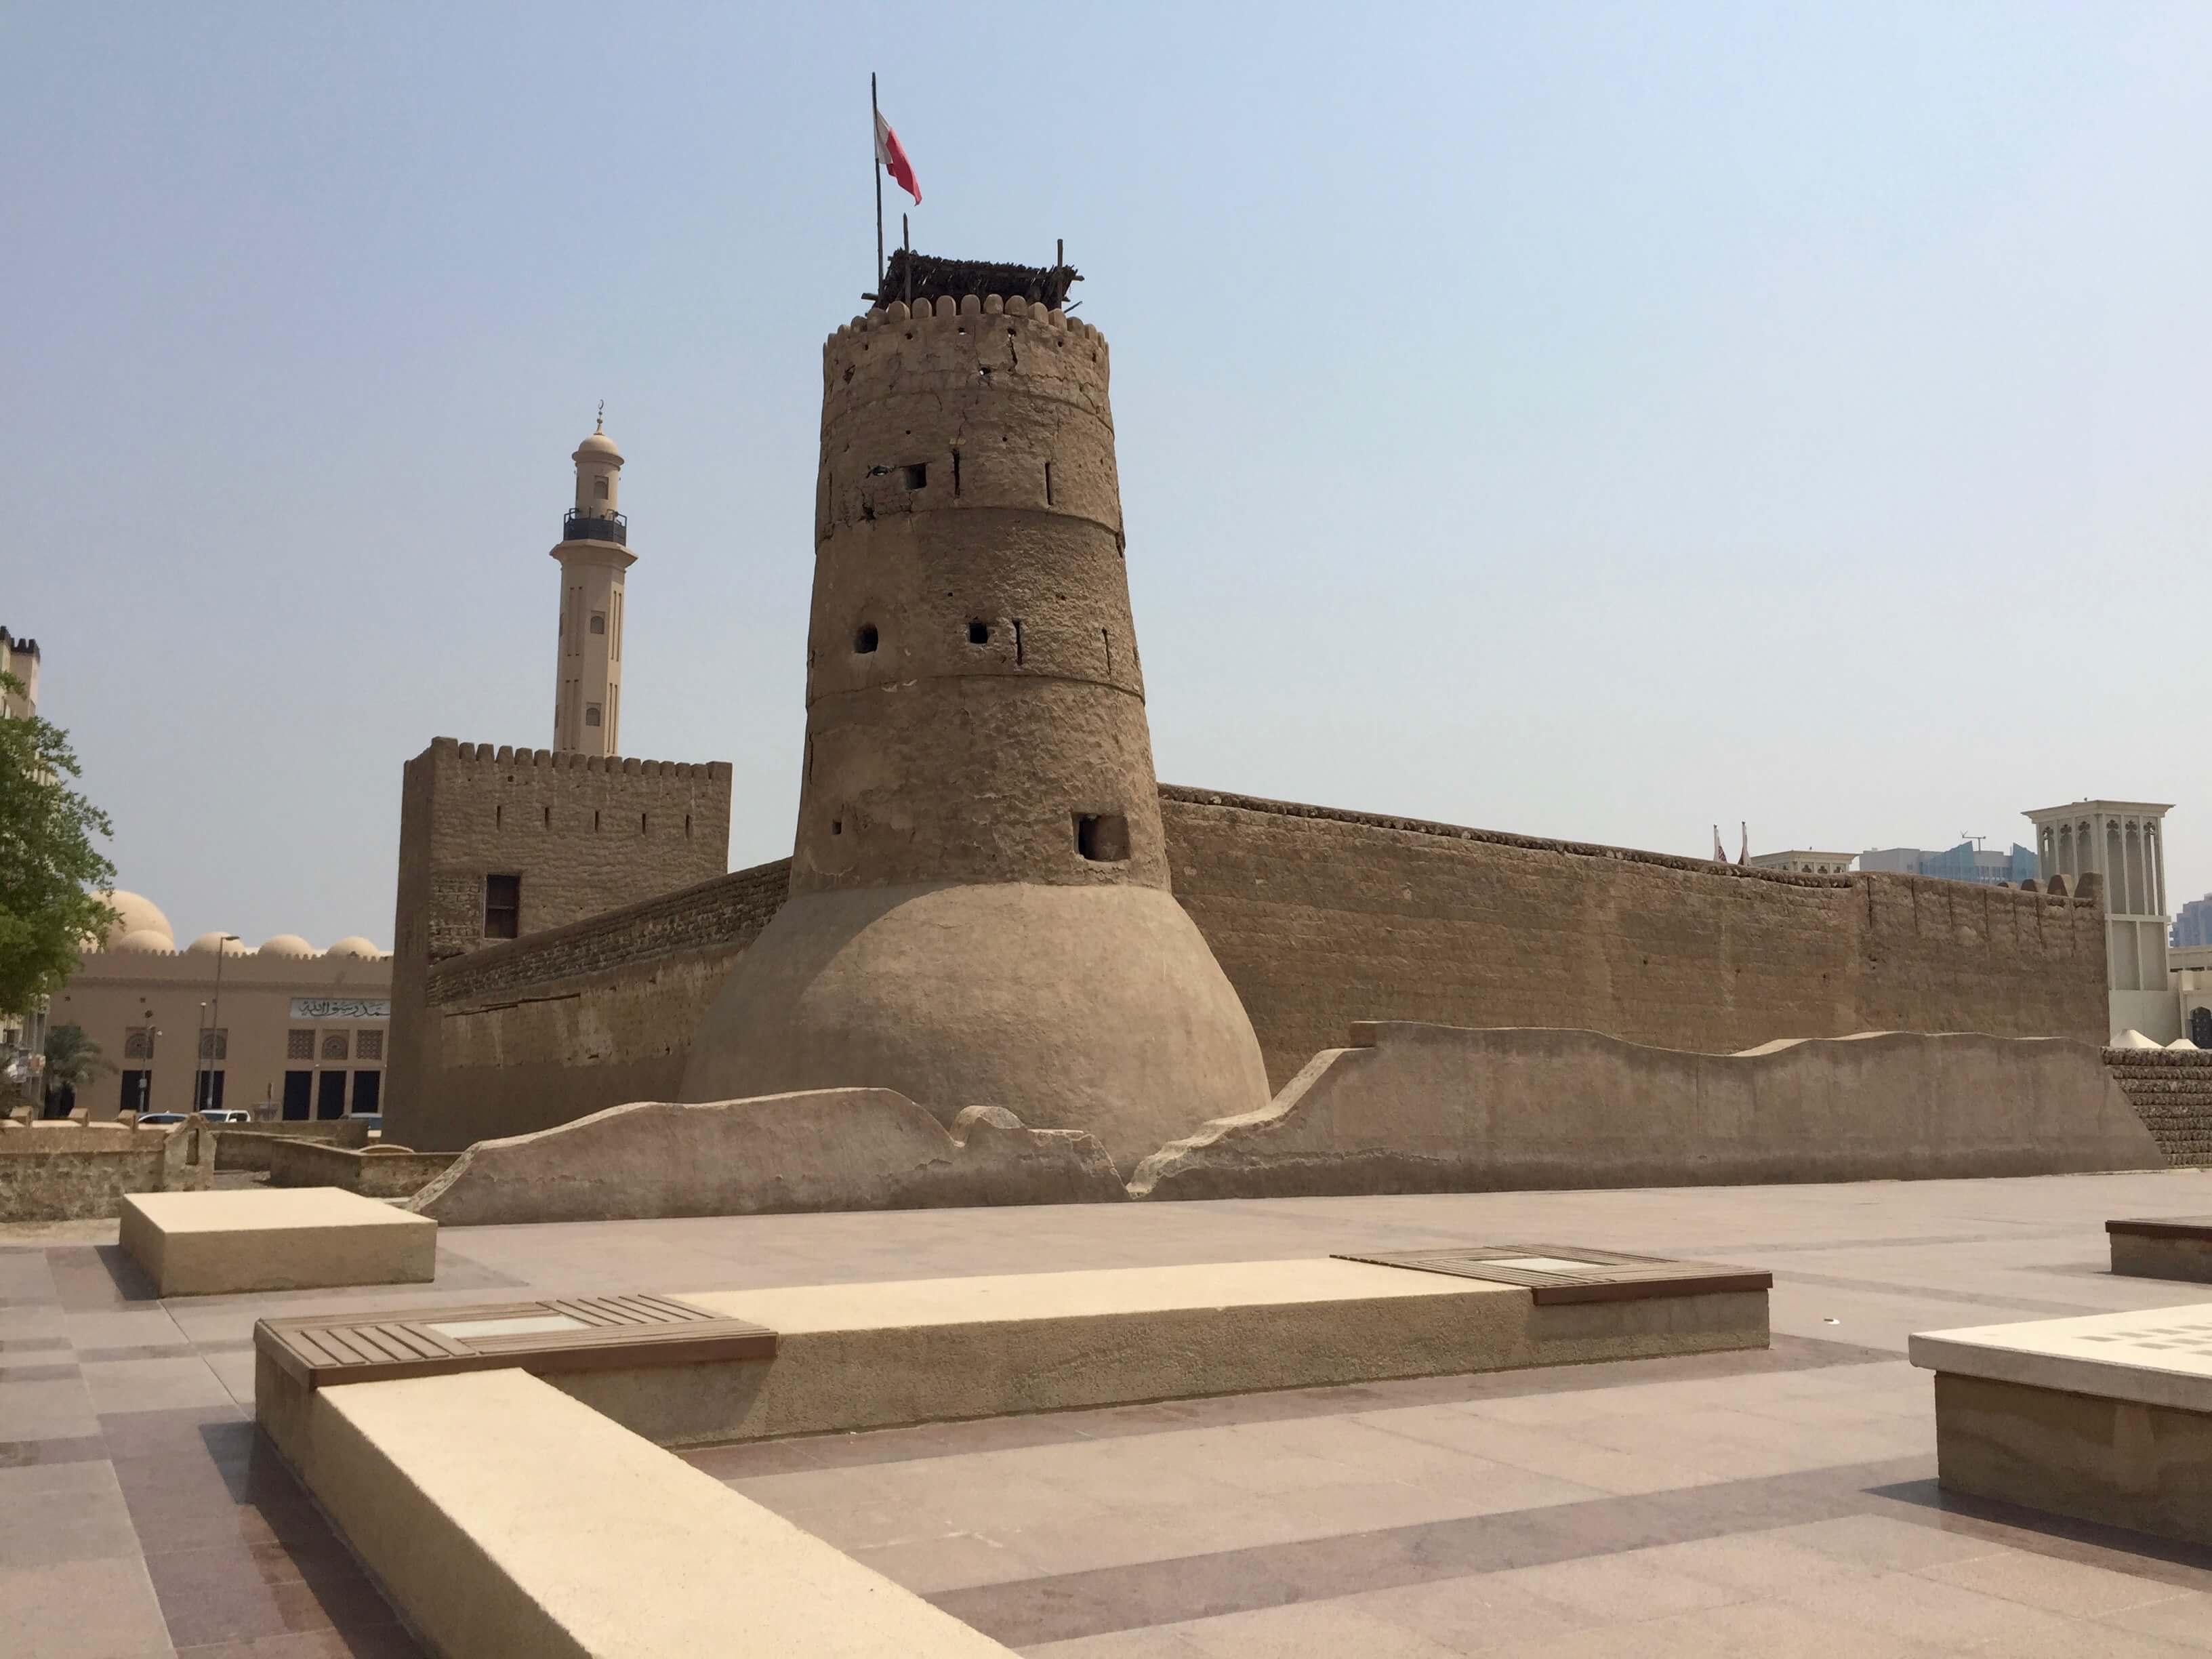 A traditional sandstone building in Dubai - The Dubai Museum